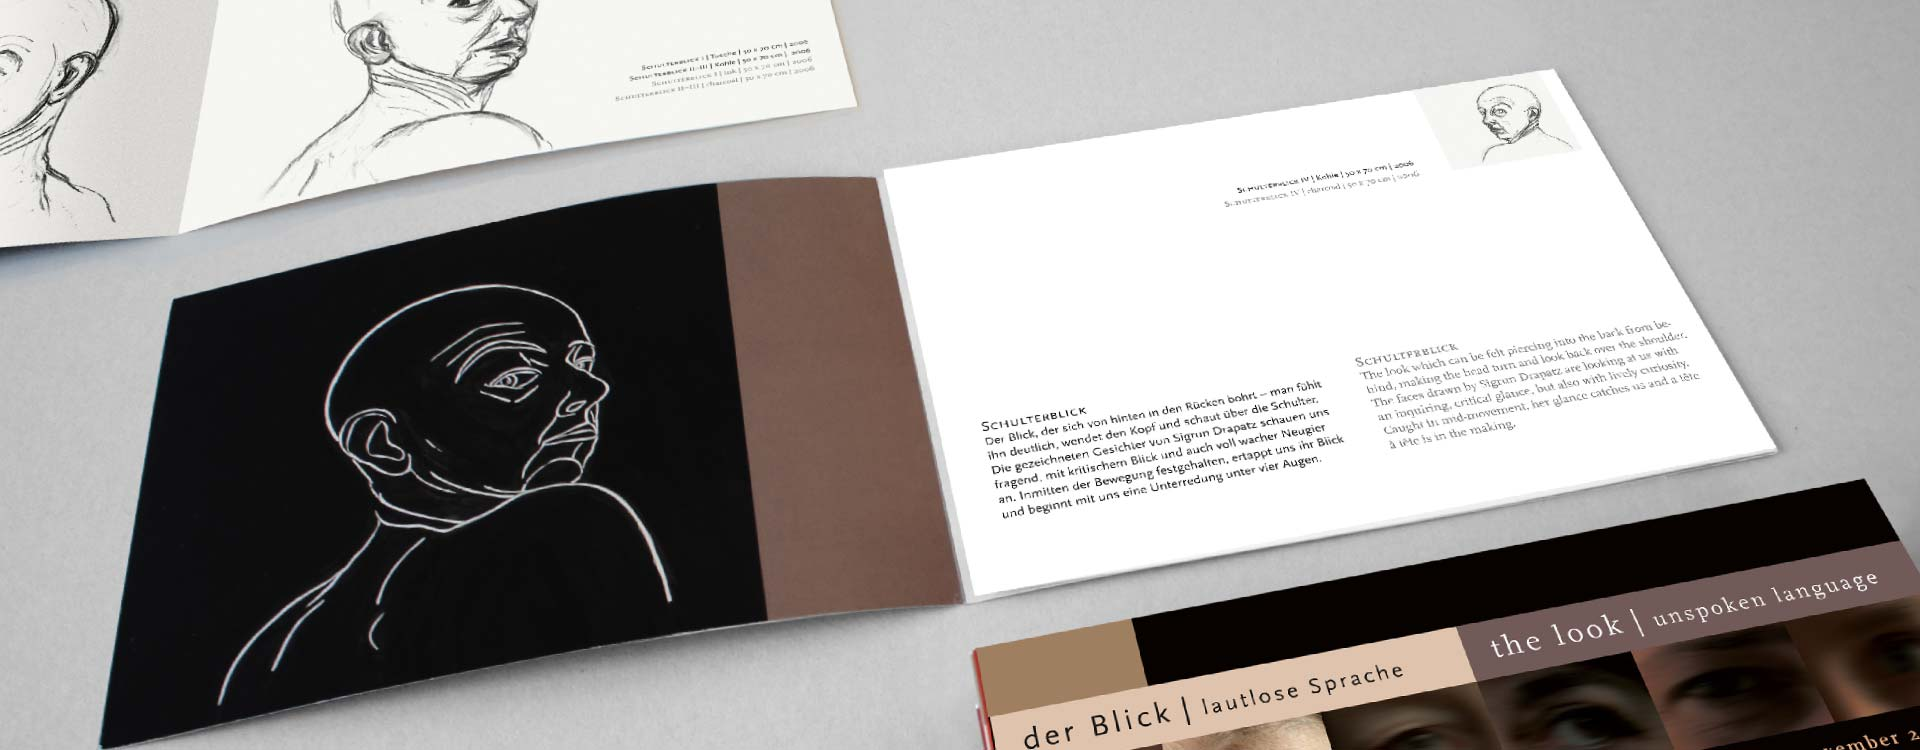 Leaflet about the work of Sigrun Drapatz in the exhibition Der Blick; Design: Kattrin Richter | Graphic Design Studio